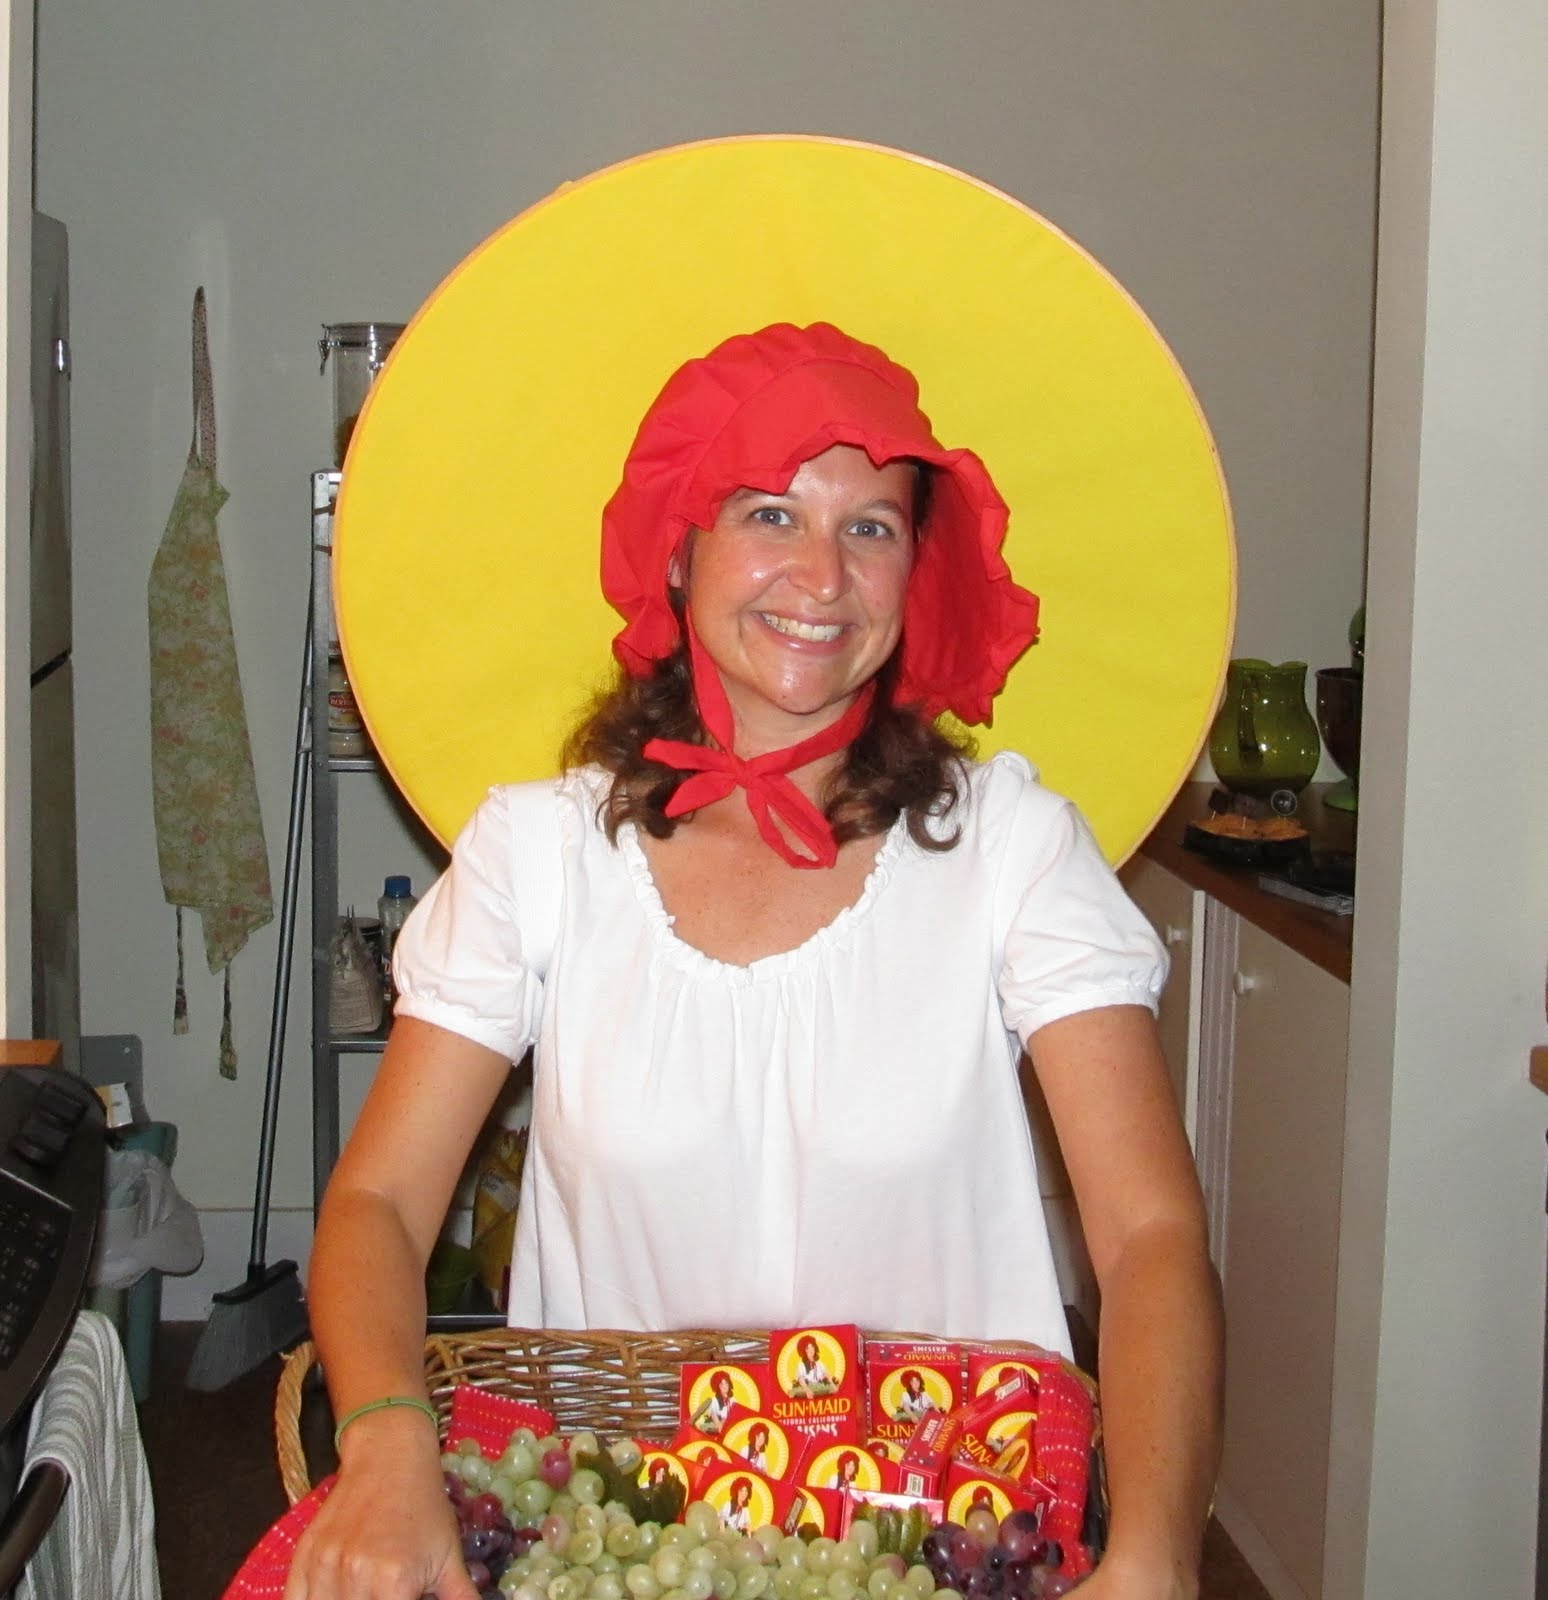 To totally toot my horn this was my best costume ever. Not only was it well-received it was comfortable (jeans and red flip-flops on the bottom).  sc 1 st  A Hoarse Radish & A Hoarse Radish: Halloween: Sun-Maid Raisin Girl!